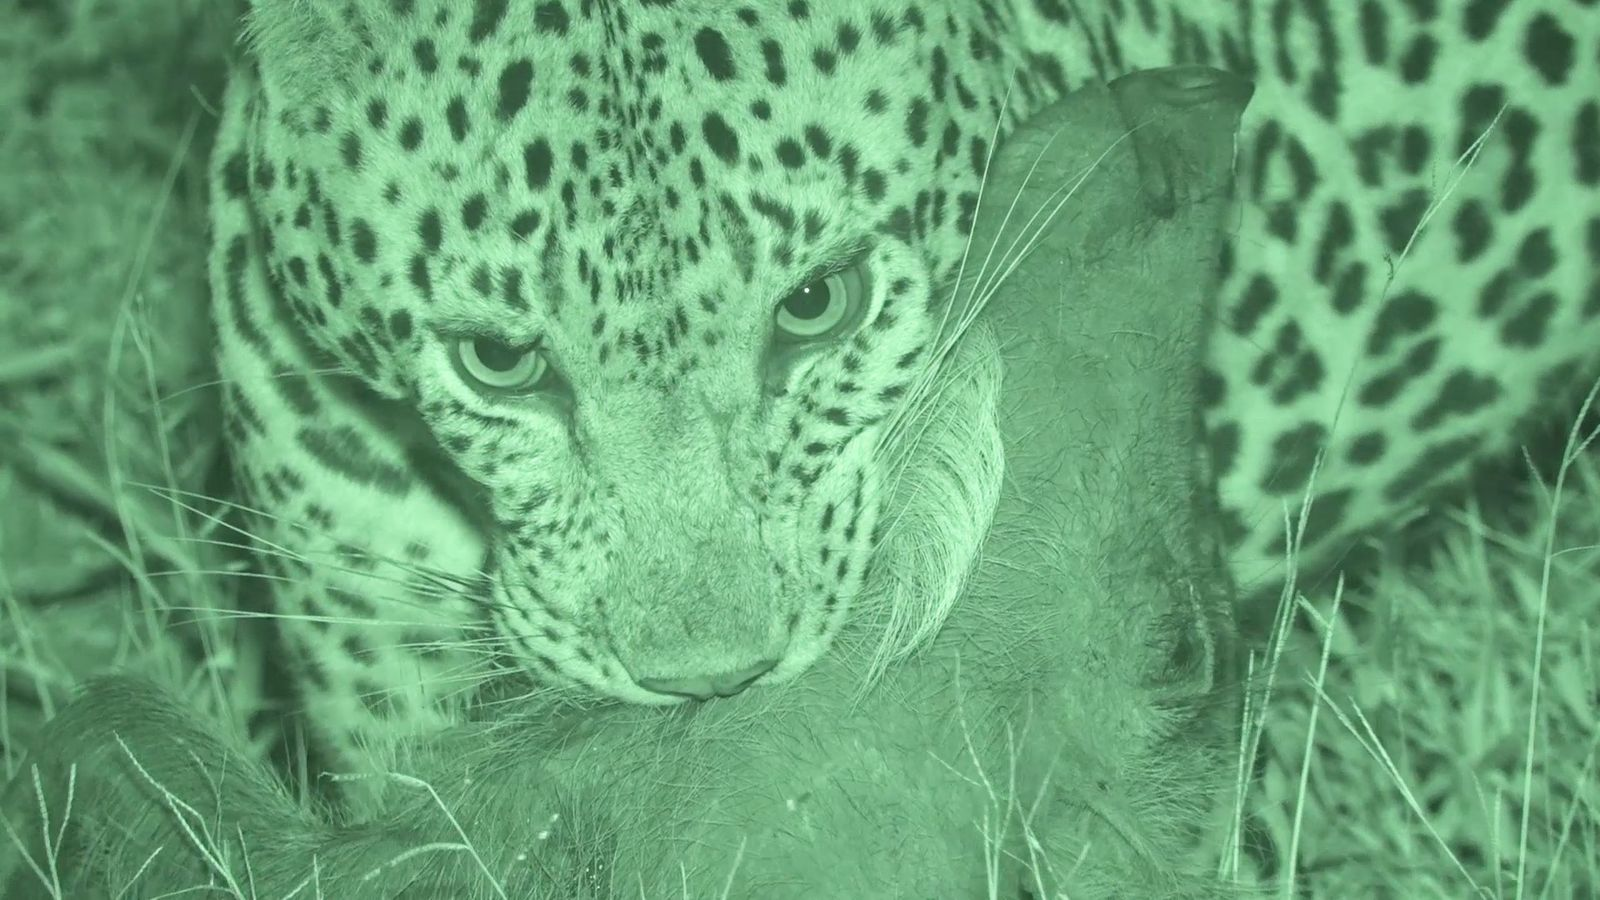 Watch a Leopard Pounce On an Unsuspecting Warthog